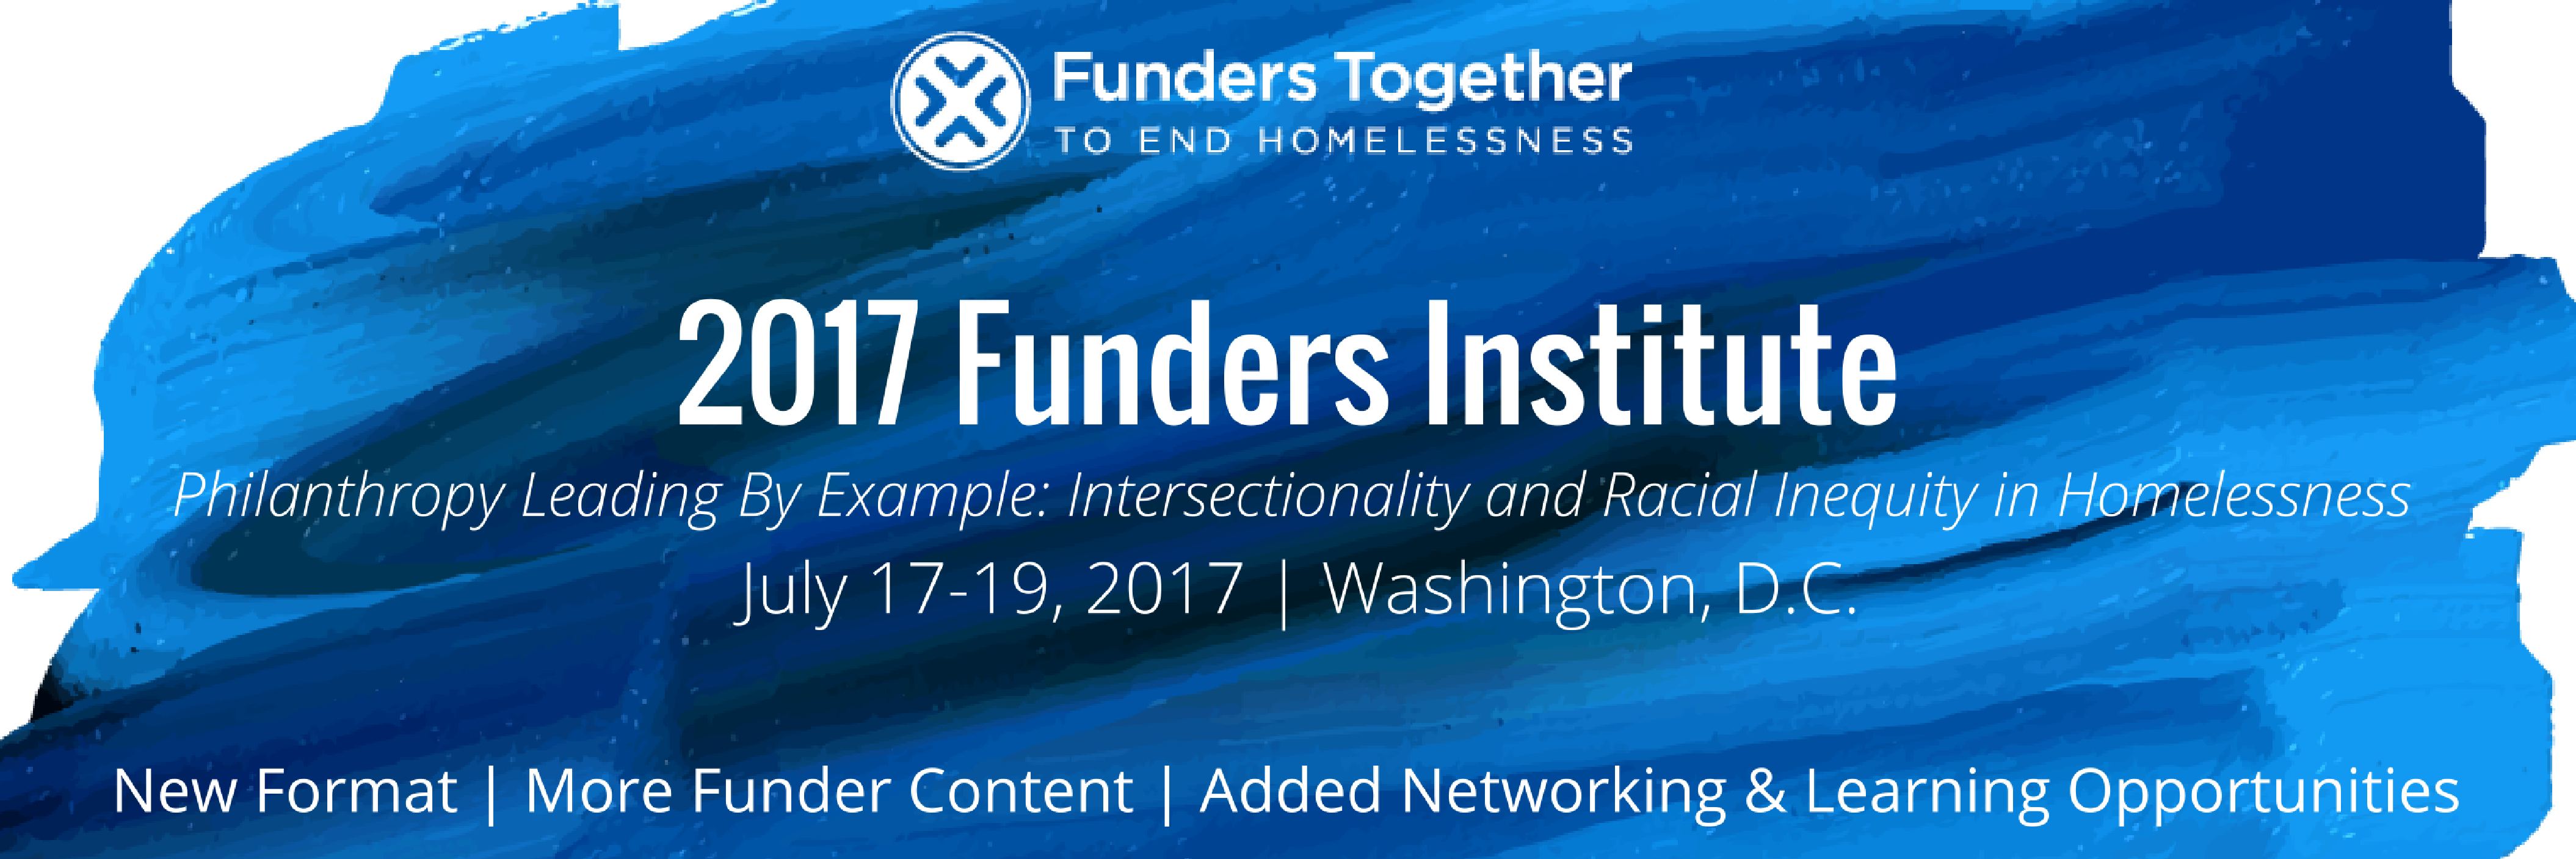 2017_Funders_Institute_Slider_Registration_(4).png